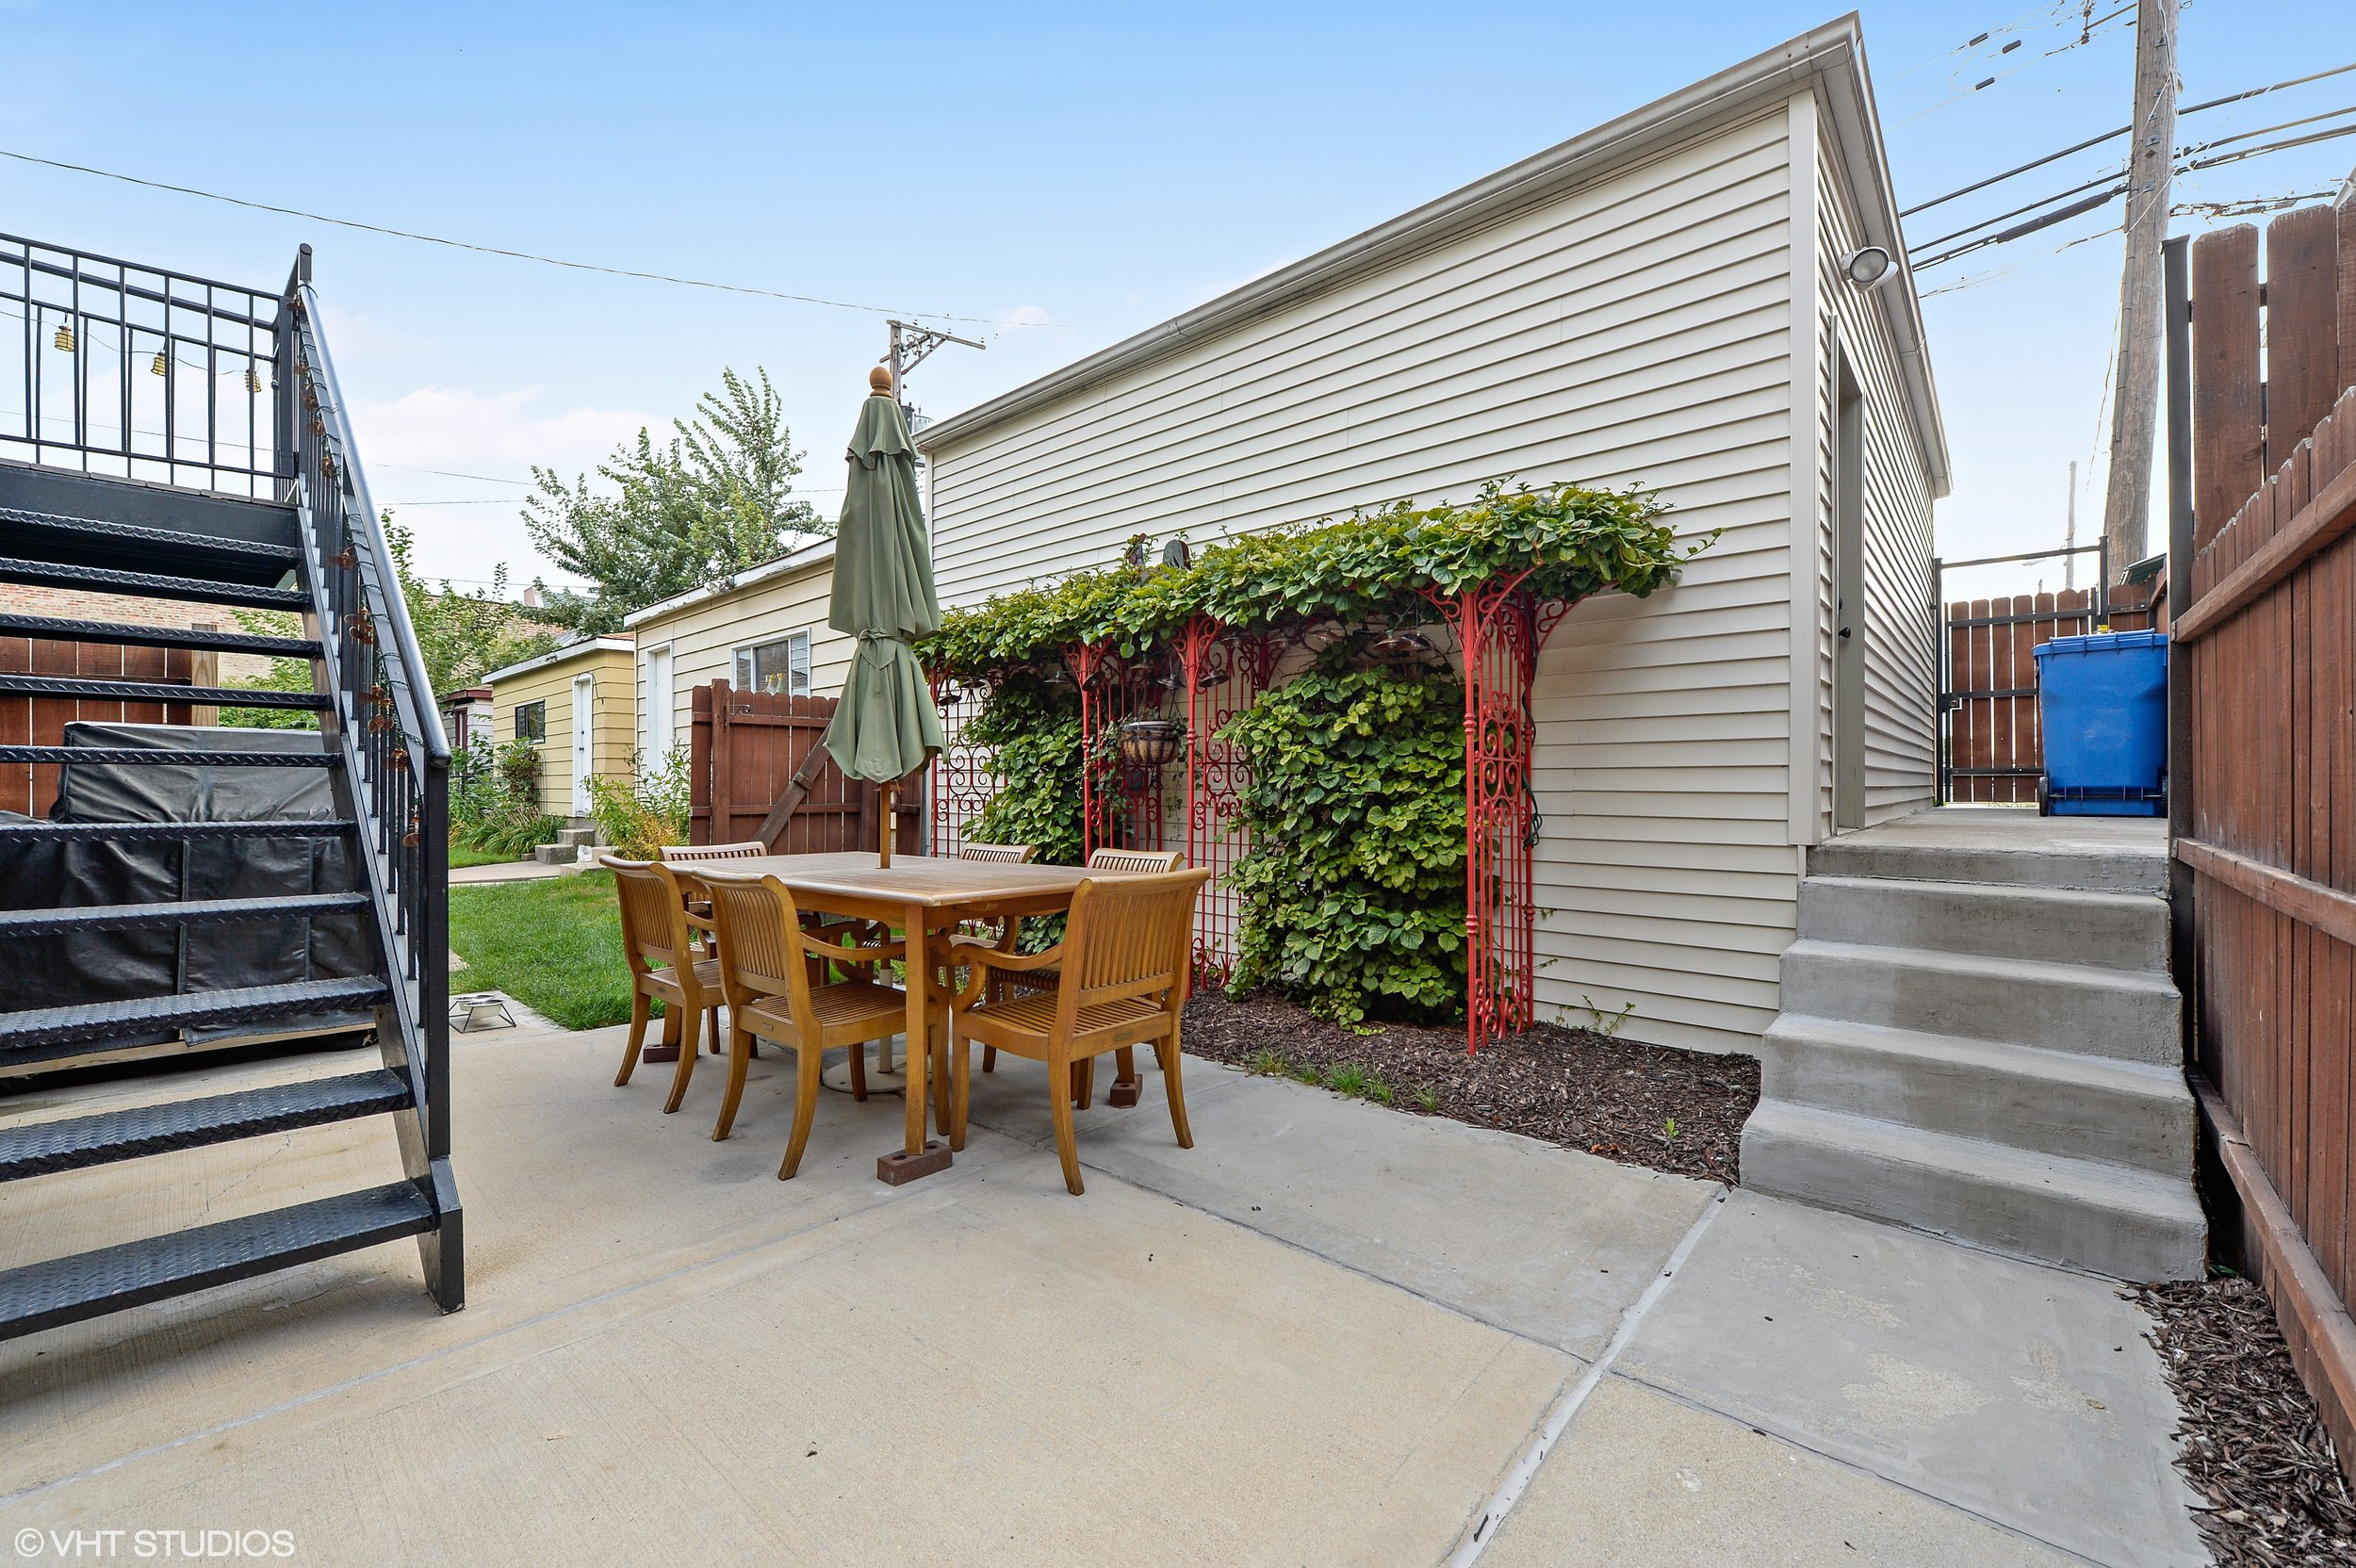 22_3212SouthThroopSt_85_Patio_HiRes.jpg